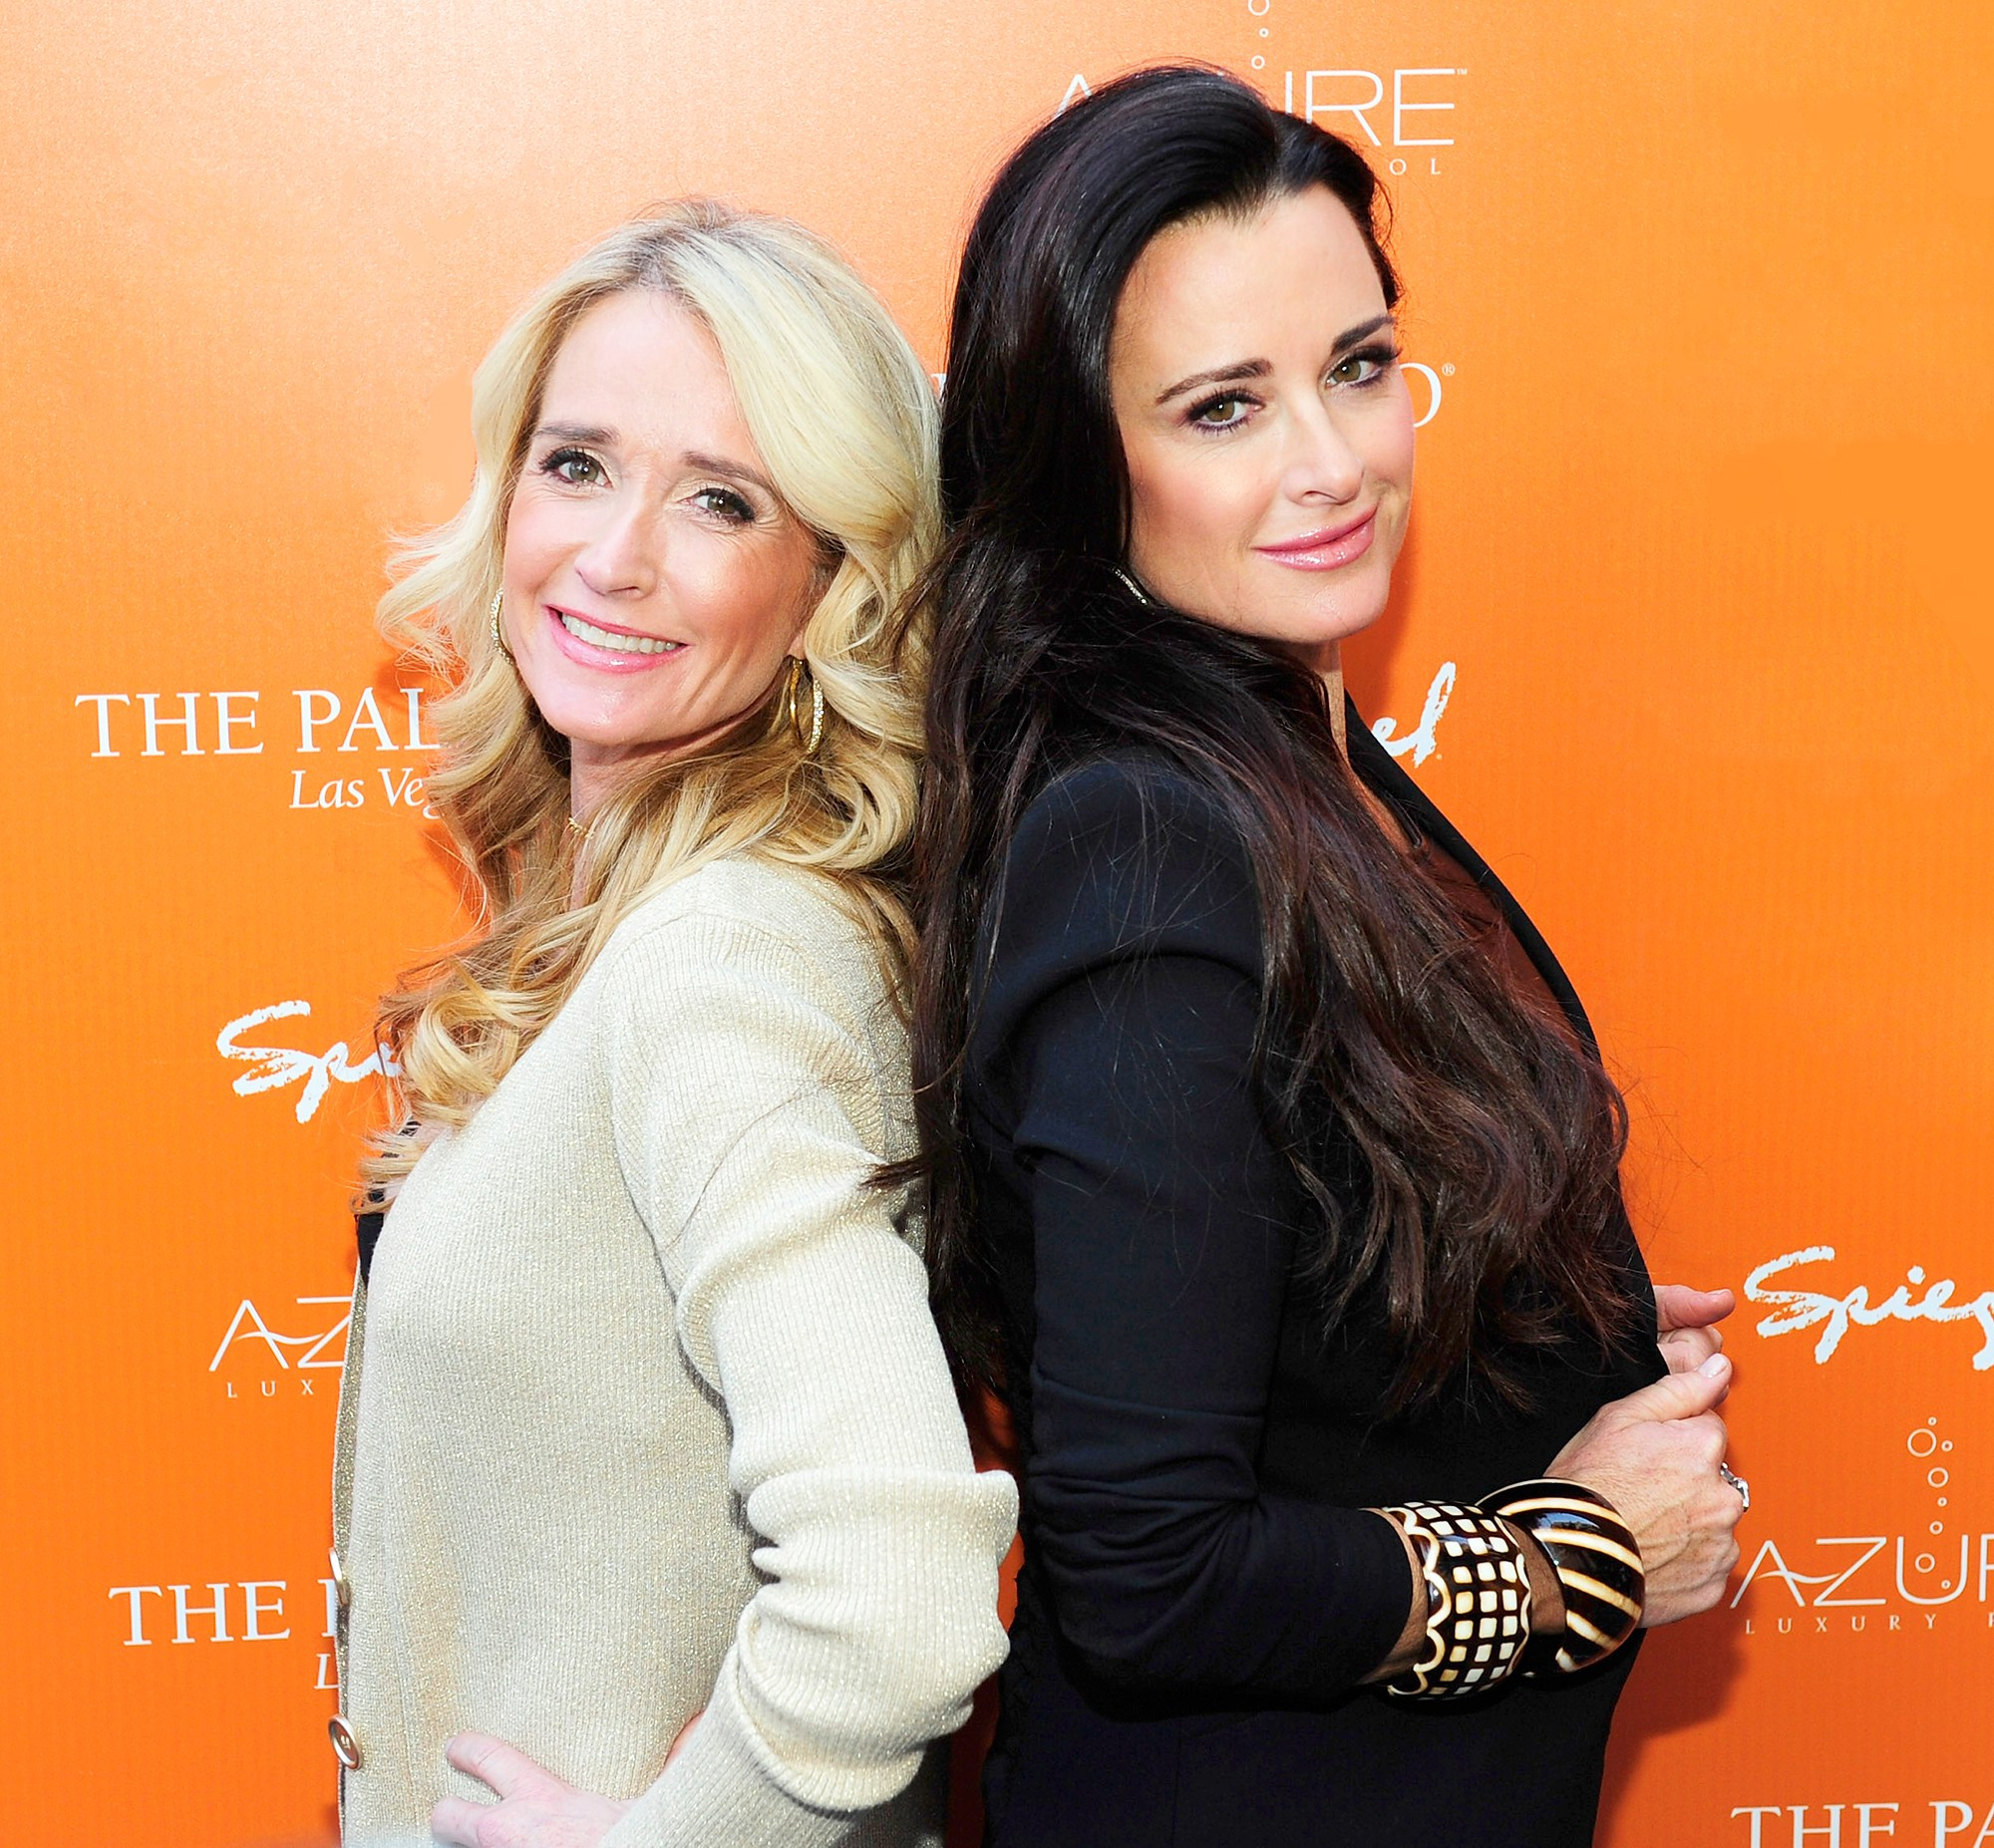 Kim Richards and Kyle Richards arrive to the grand opening of Azure luxury pool at The Palazzo on April 10, 2011 in Las Vegas, Nevada.